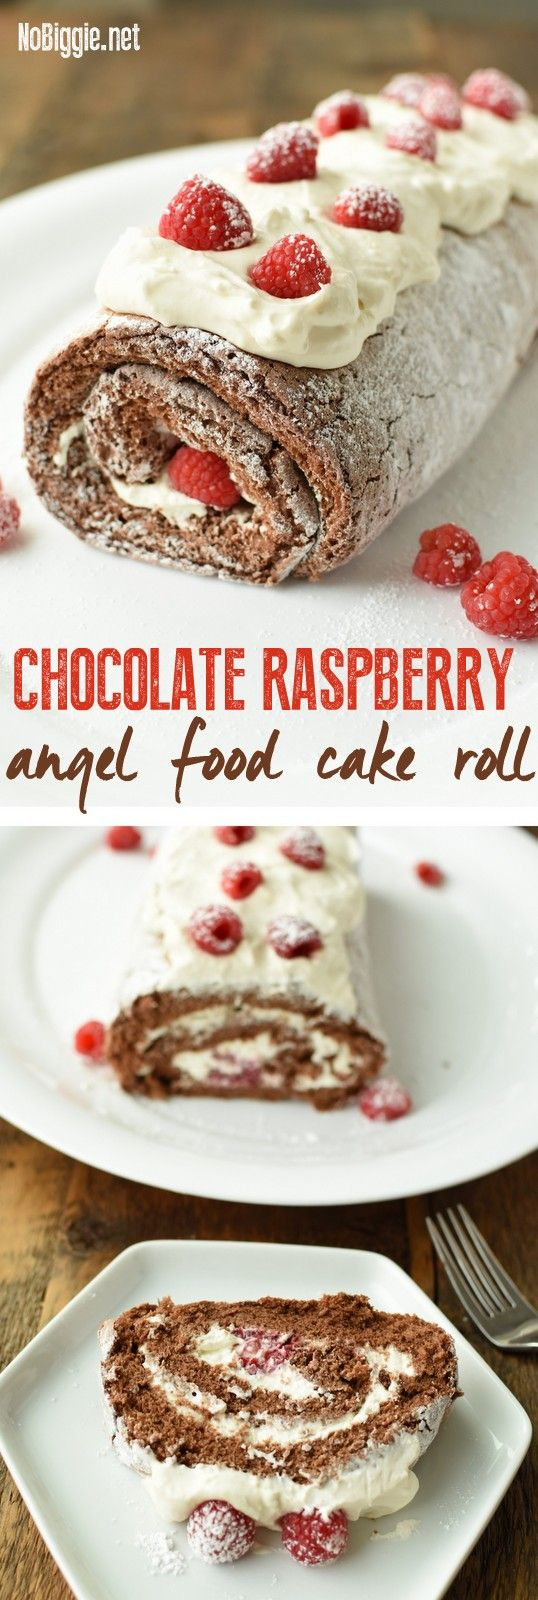 Chocolate Raspberry Angel Food Cake Roll | NoBiggie.net - this cake is so good!